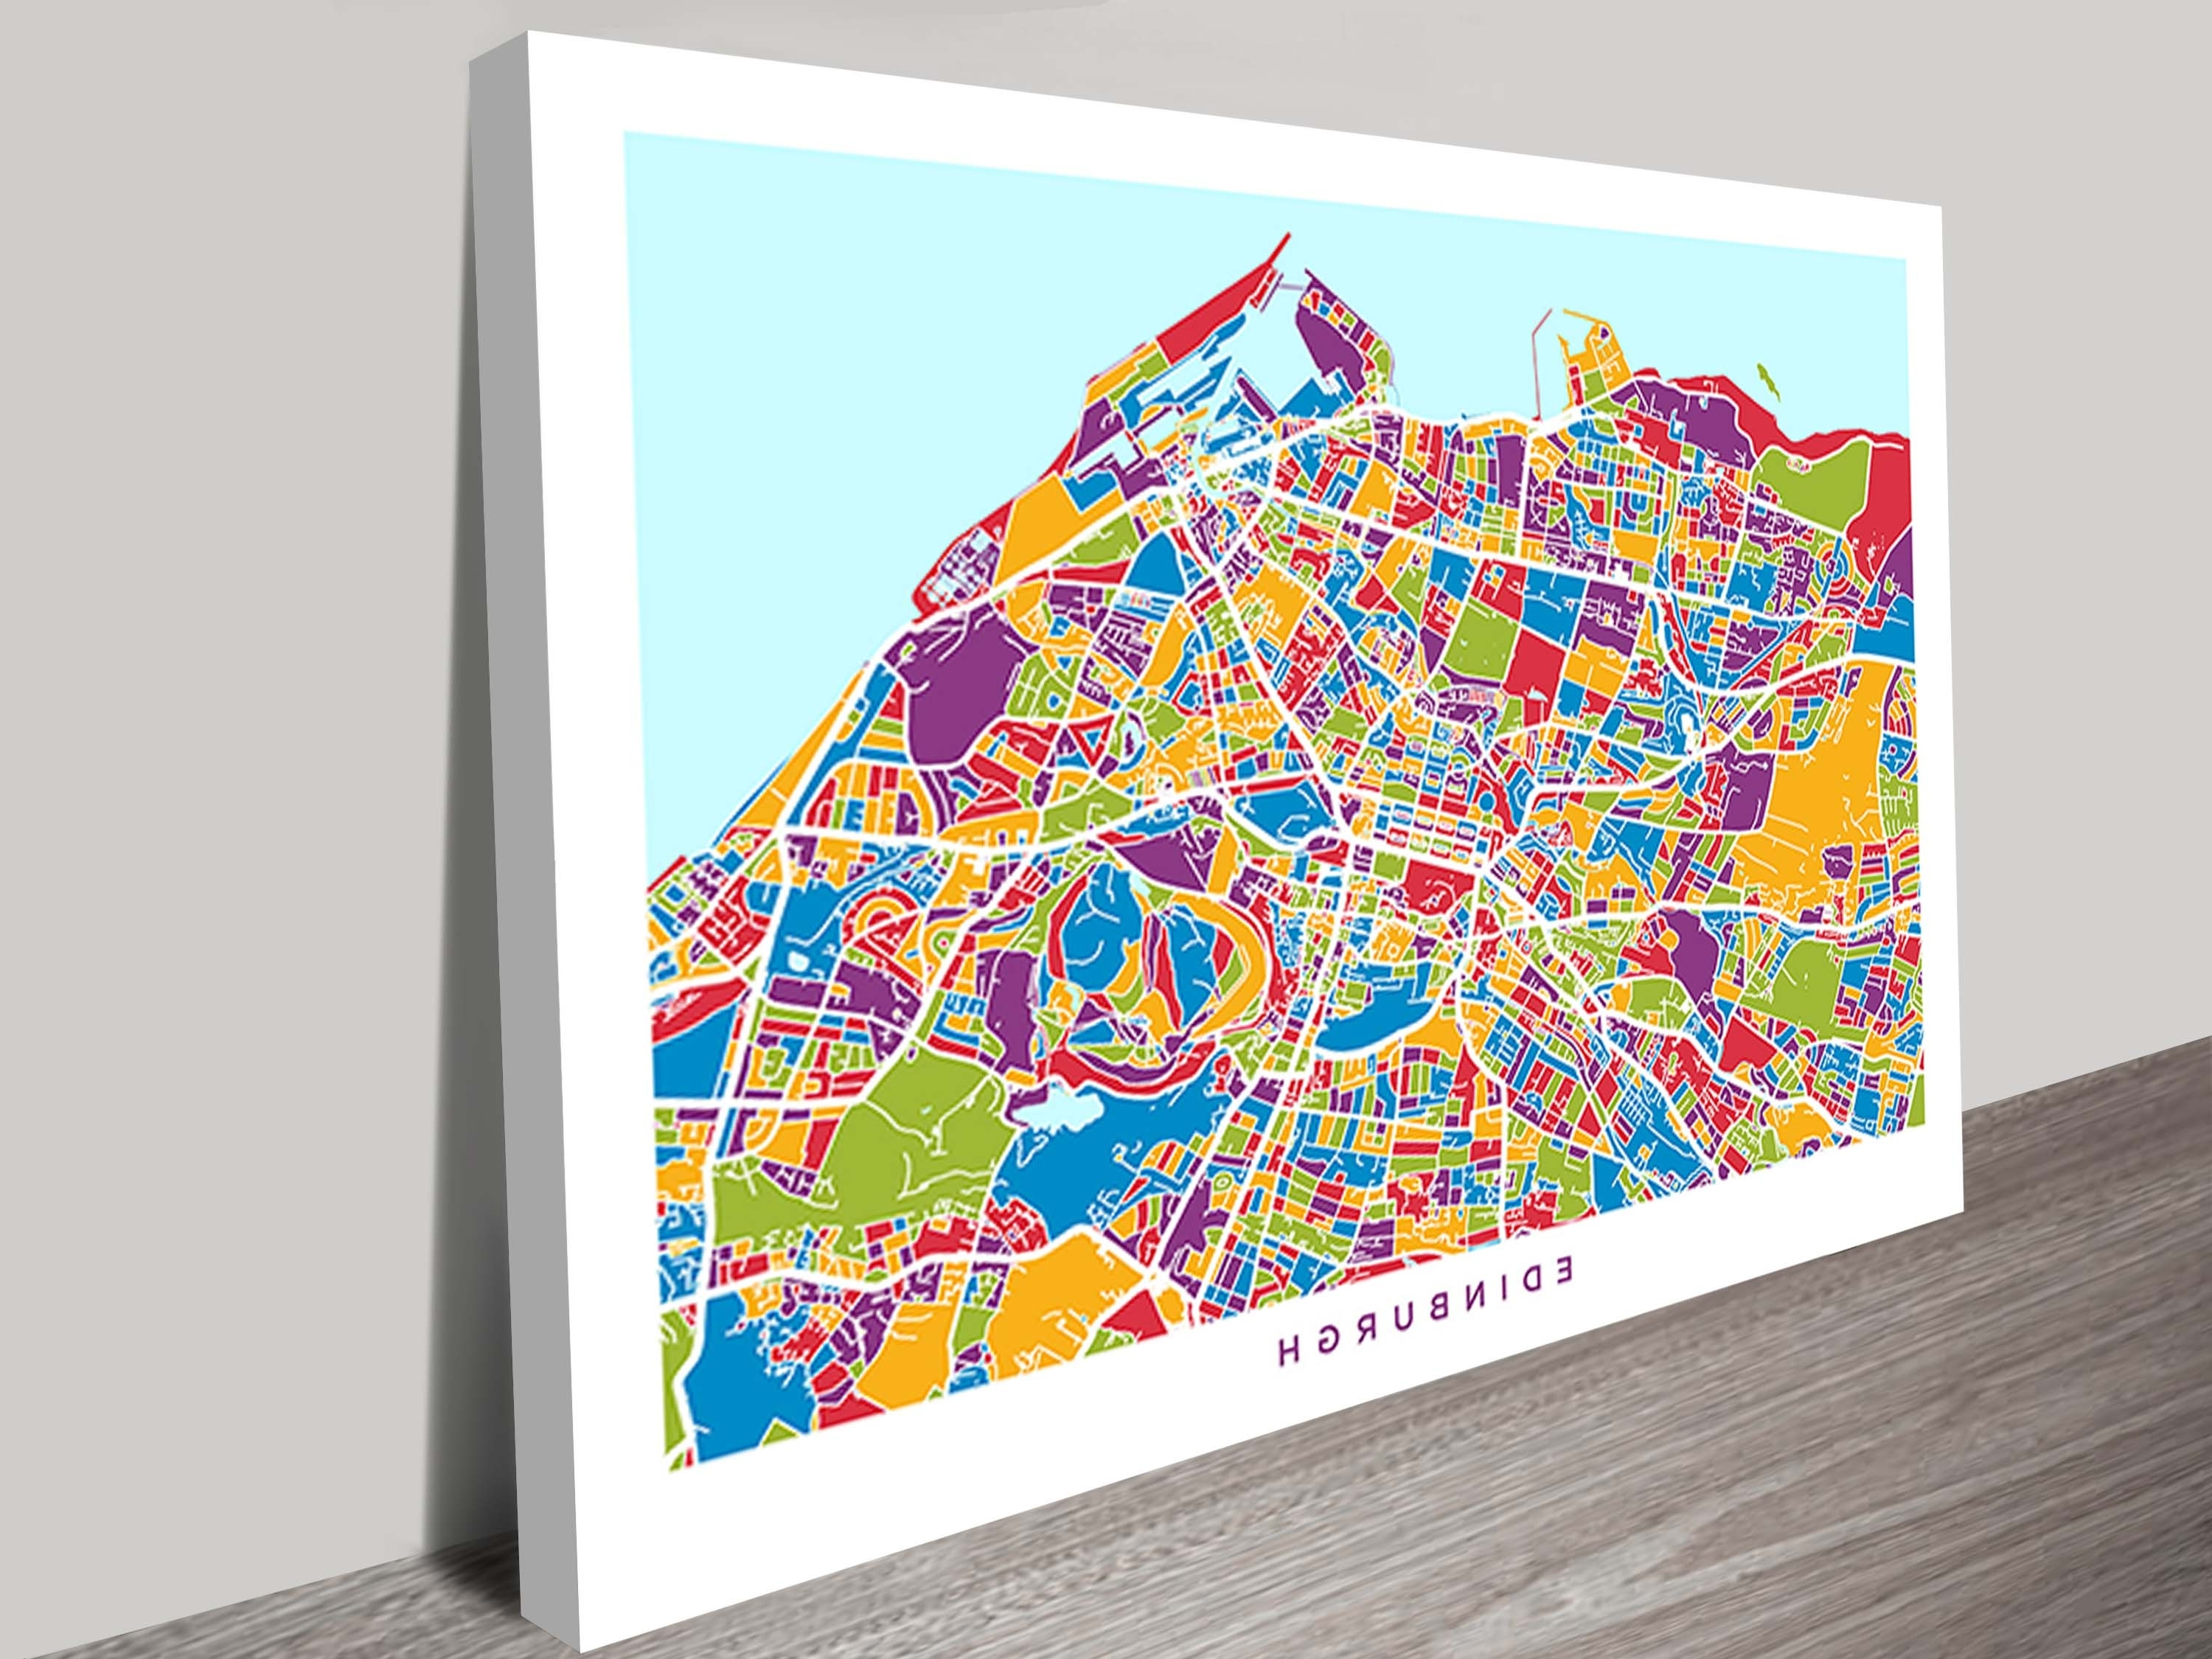 Favorite Edinburgh, Scotland Street Map Canvas Artmichael Tompsett With Edinburgh Canvas Prints Wall Art (View 8 of 15)